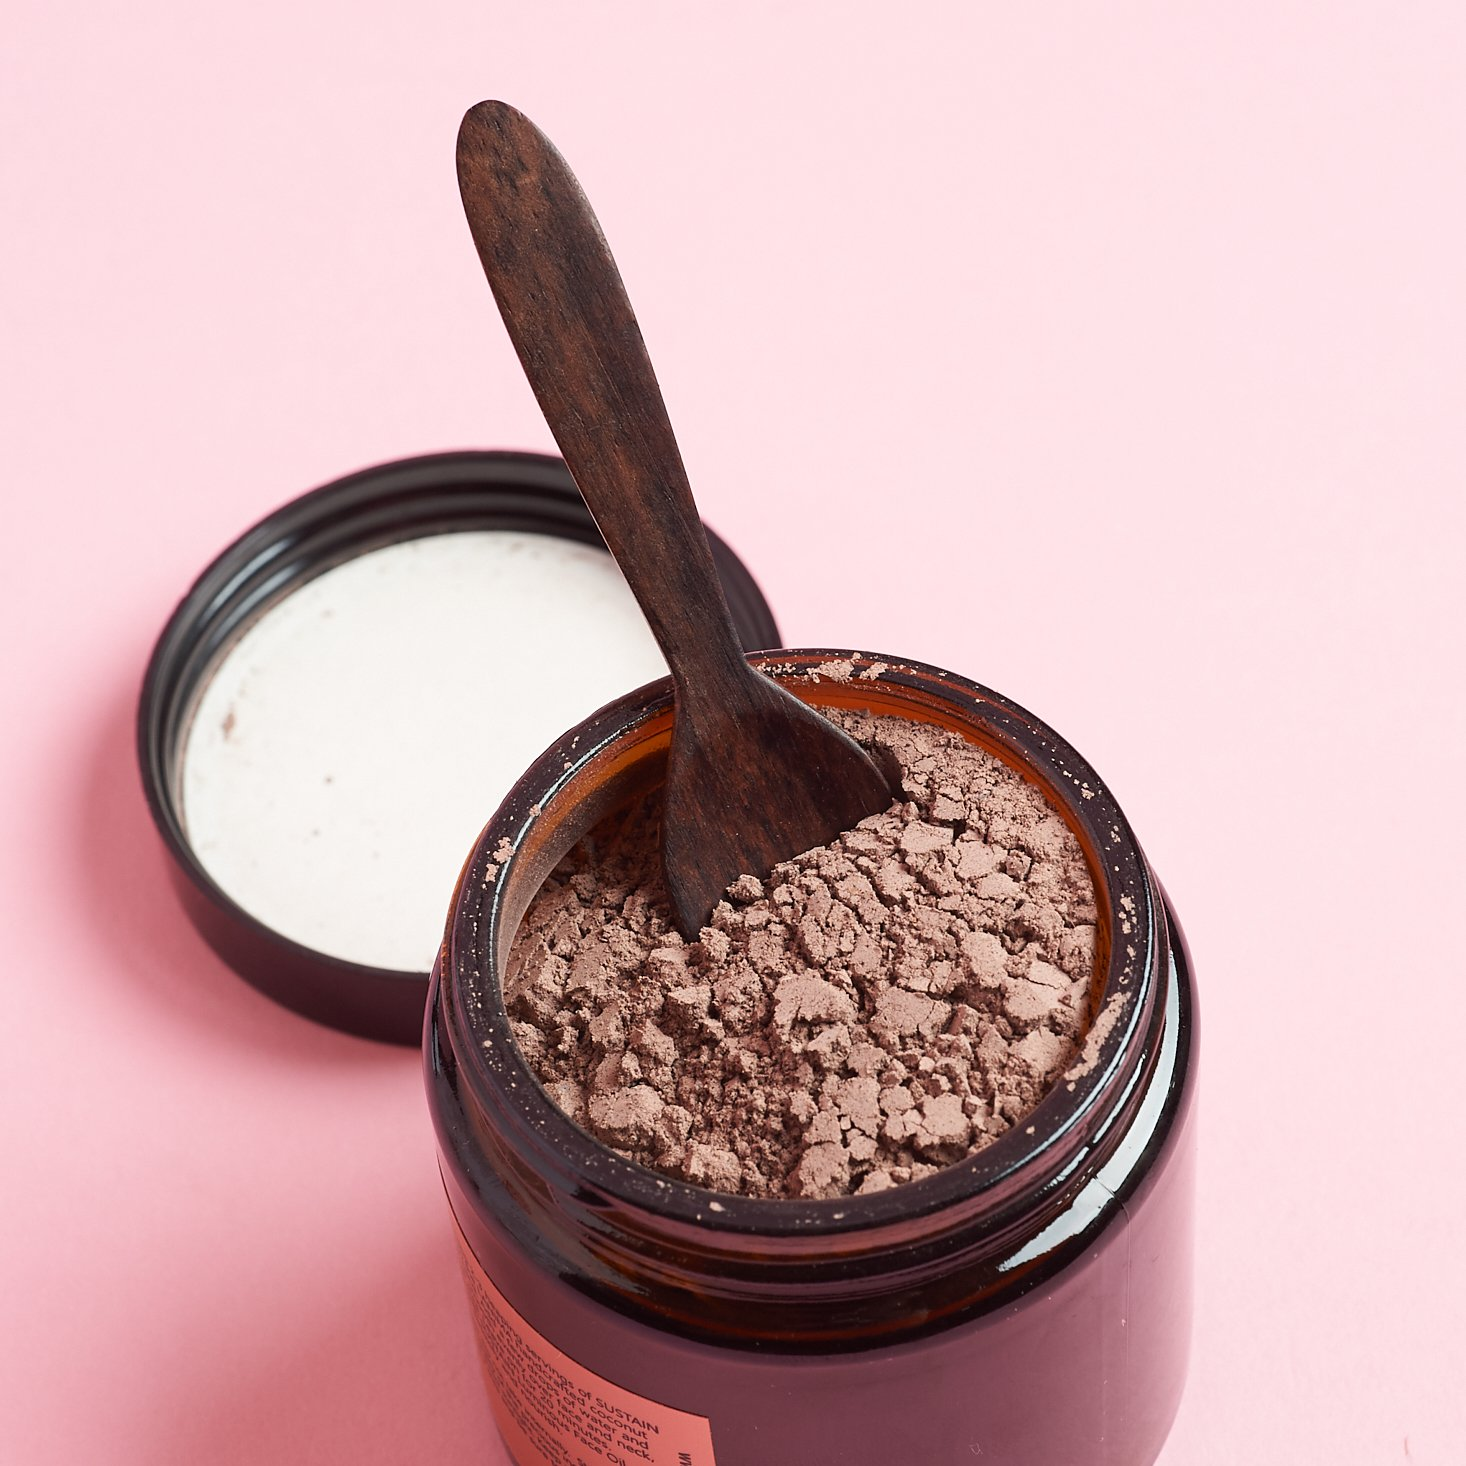 Lanima Skin Sustain Refining Clay Mask with lid off and spoon stuck in powder